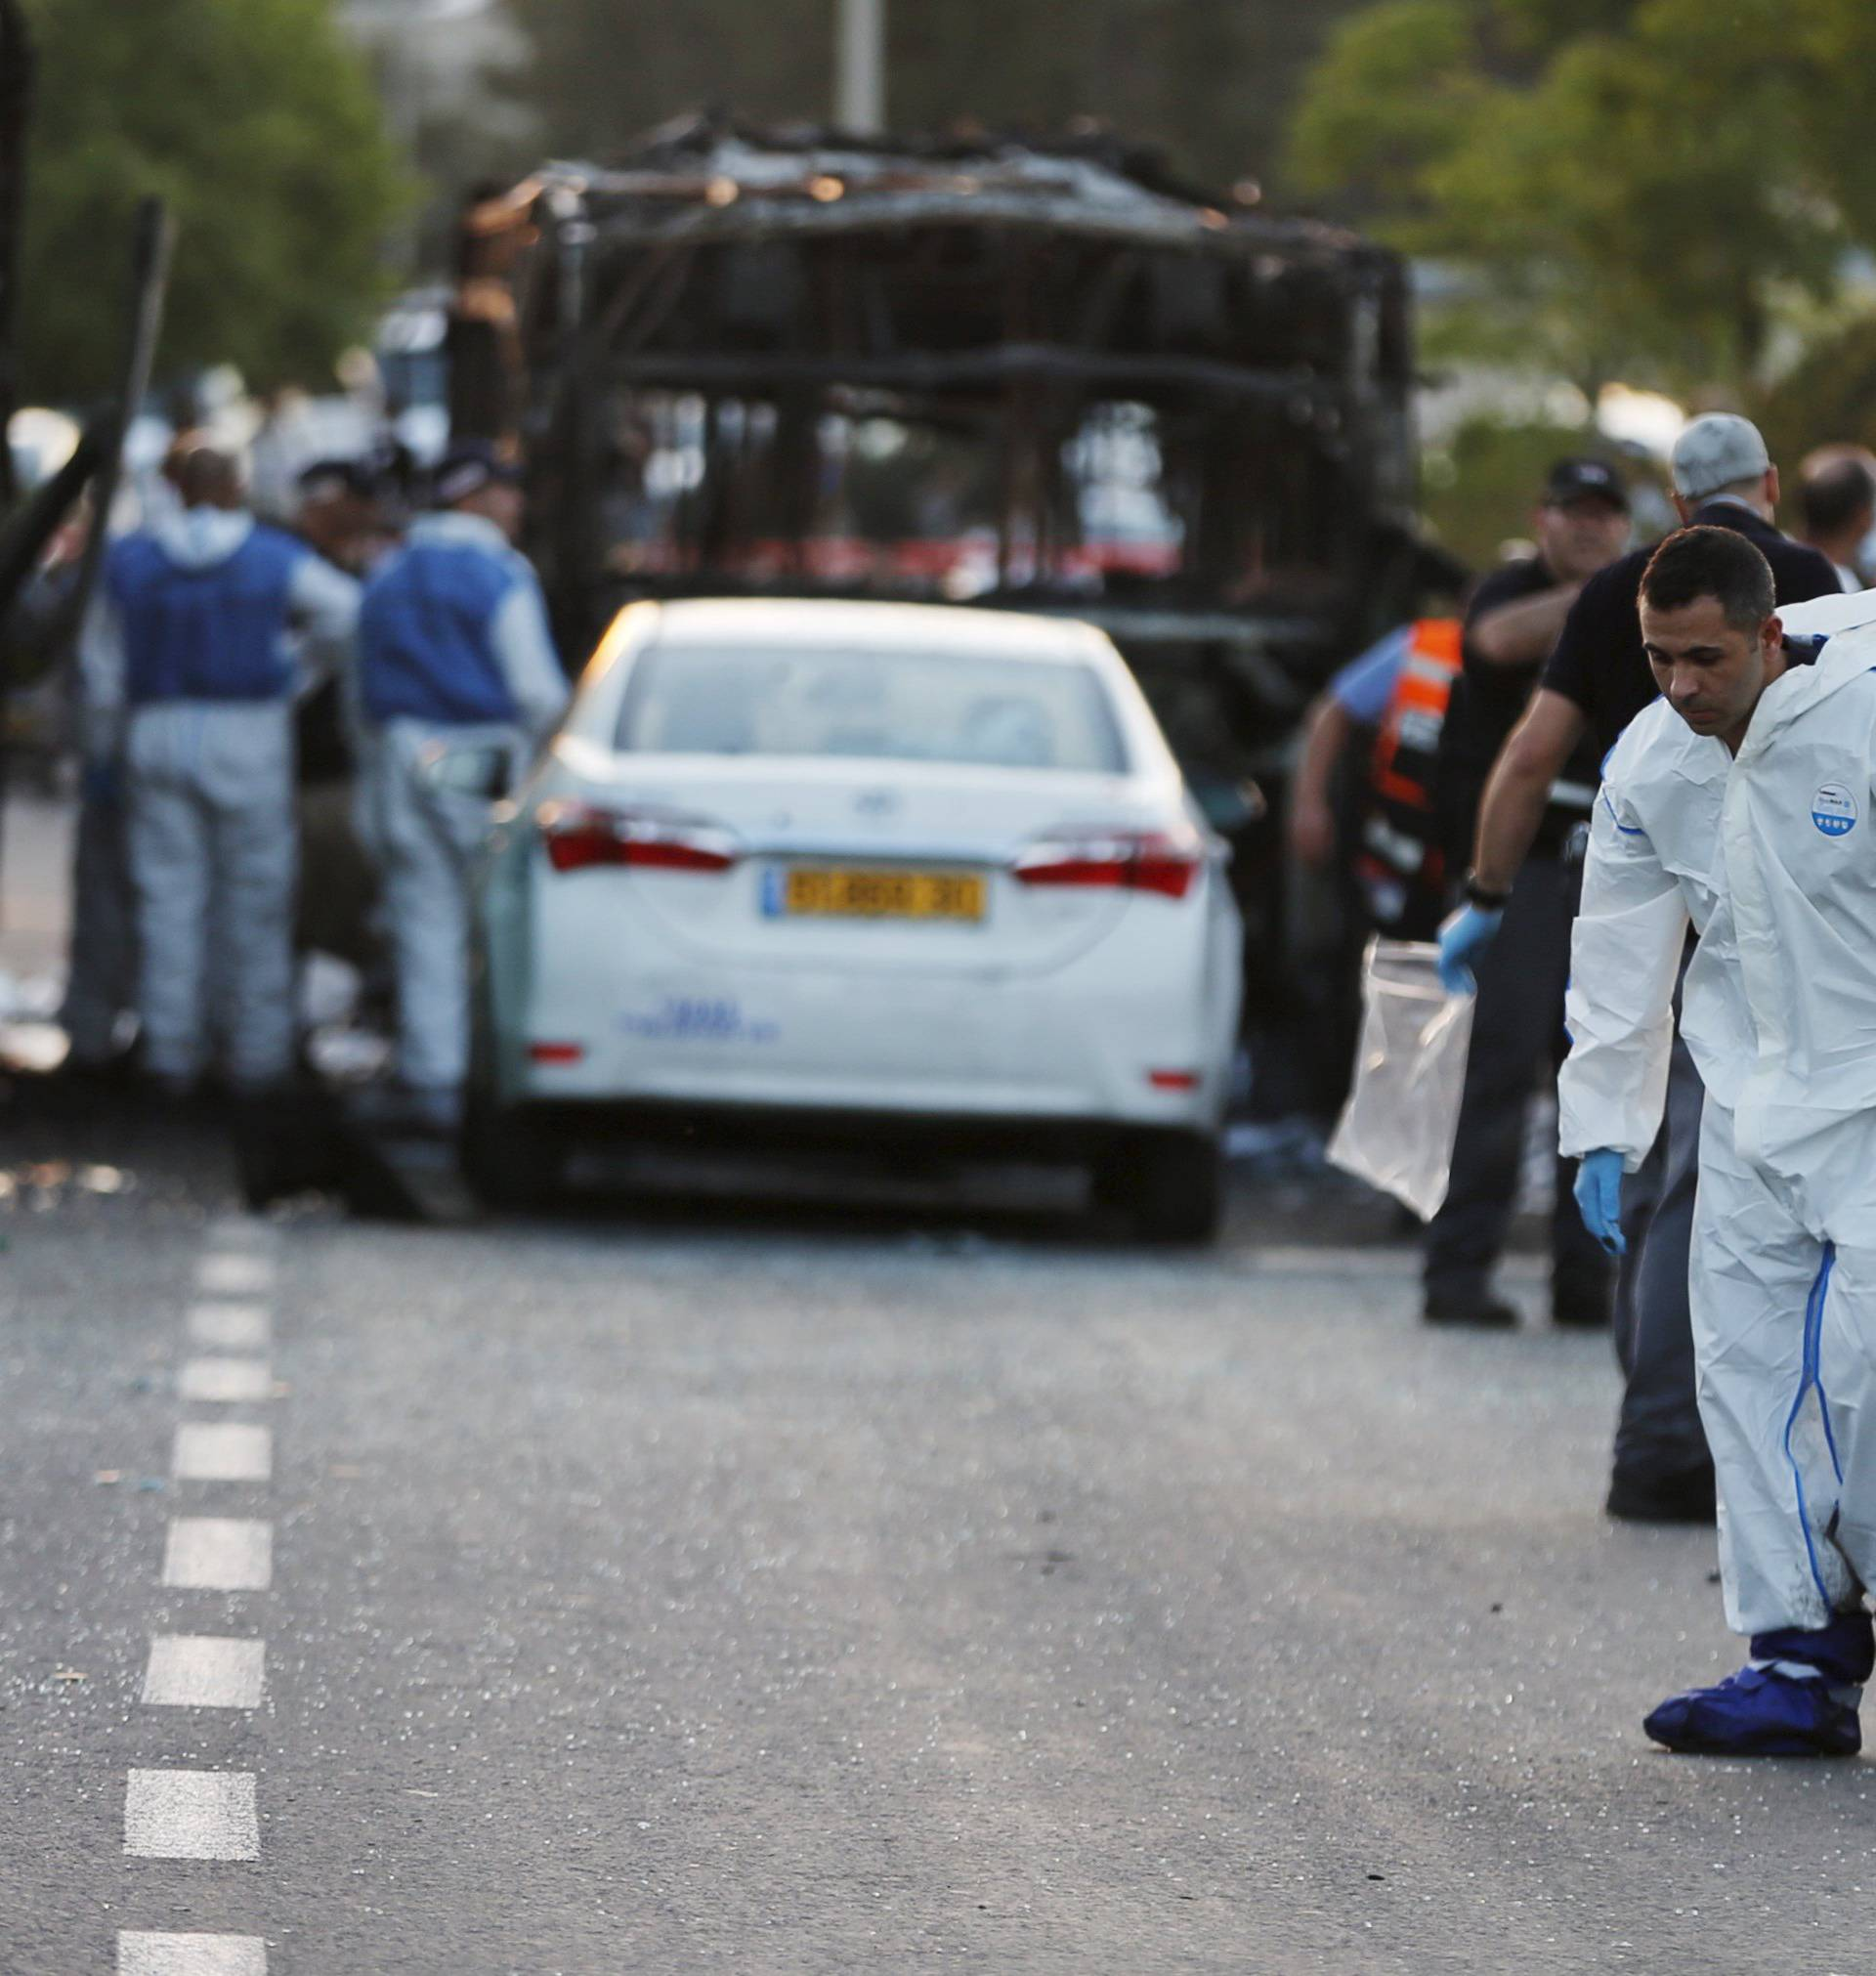 An Israeli police forensic expert works at the scene after a blast on a bus in Jerusalem